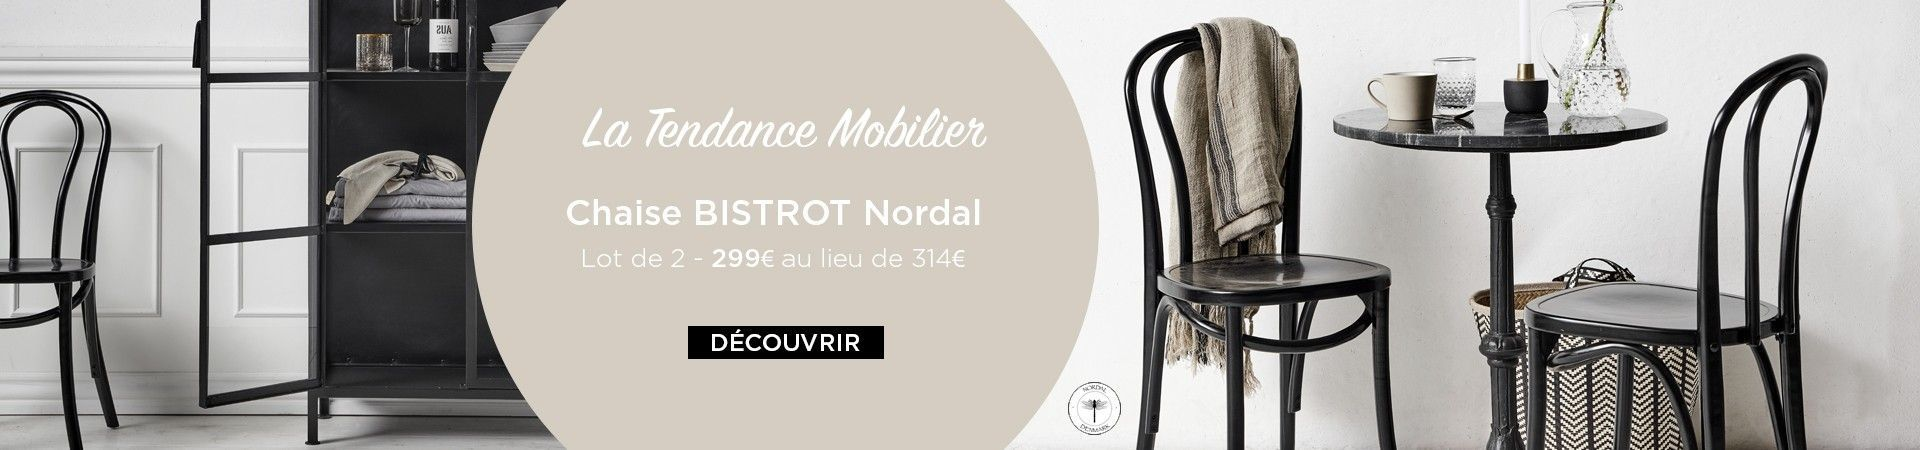 encart chaise bistrot nordal